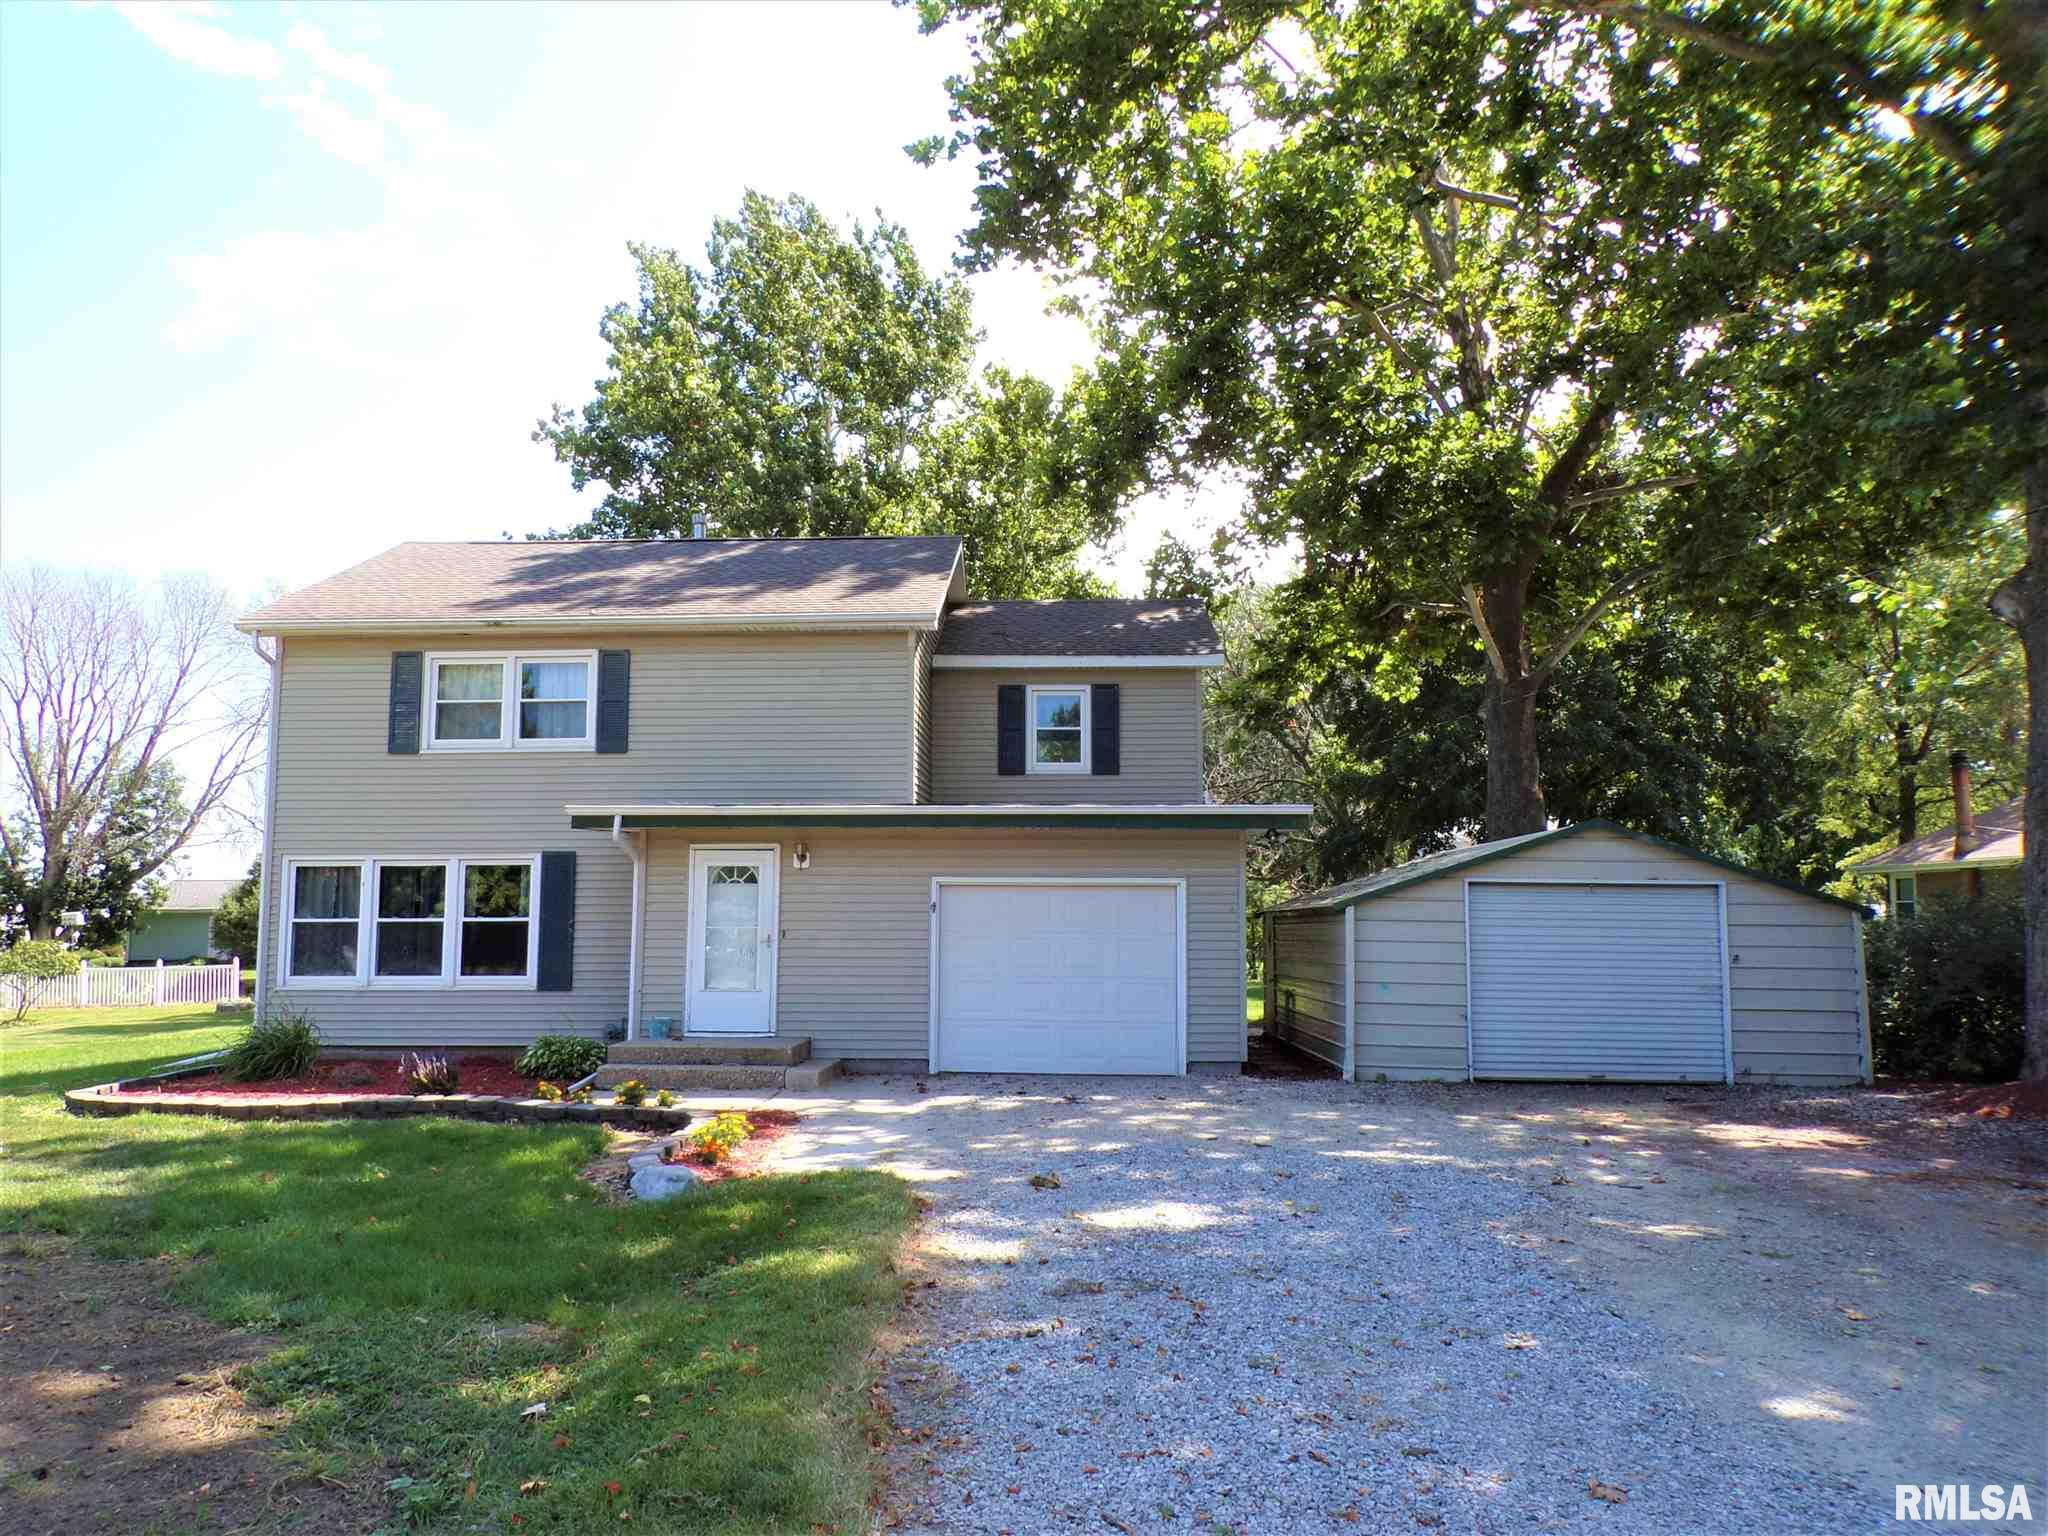 408 N 5TH Property Photo - New Windsor, IL real estate listing